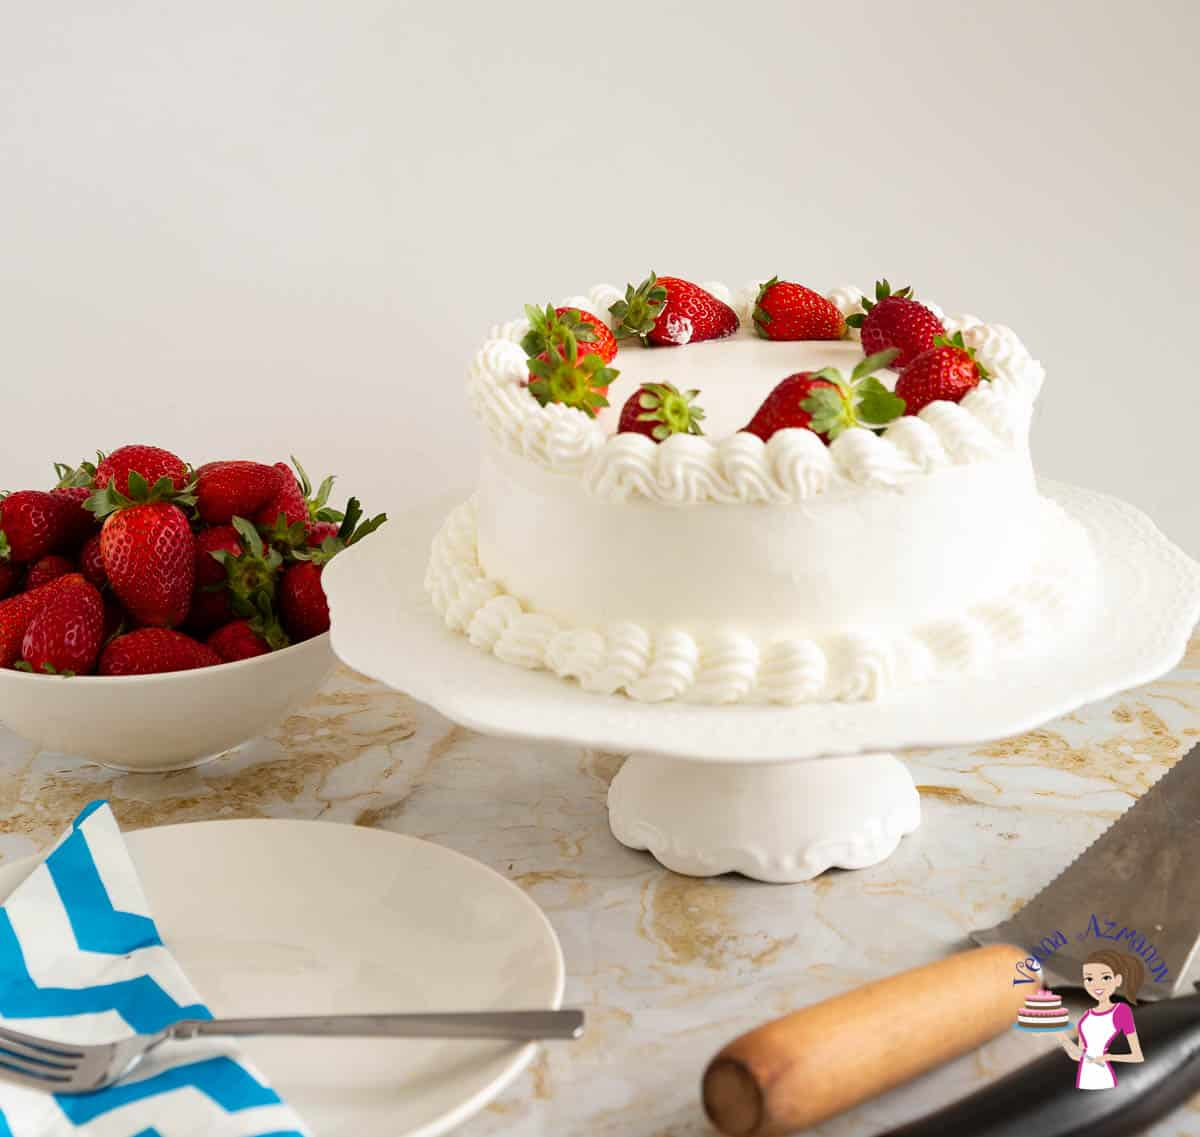 A frosted cake with whipped cream and strawberries